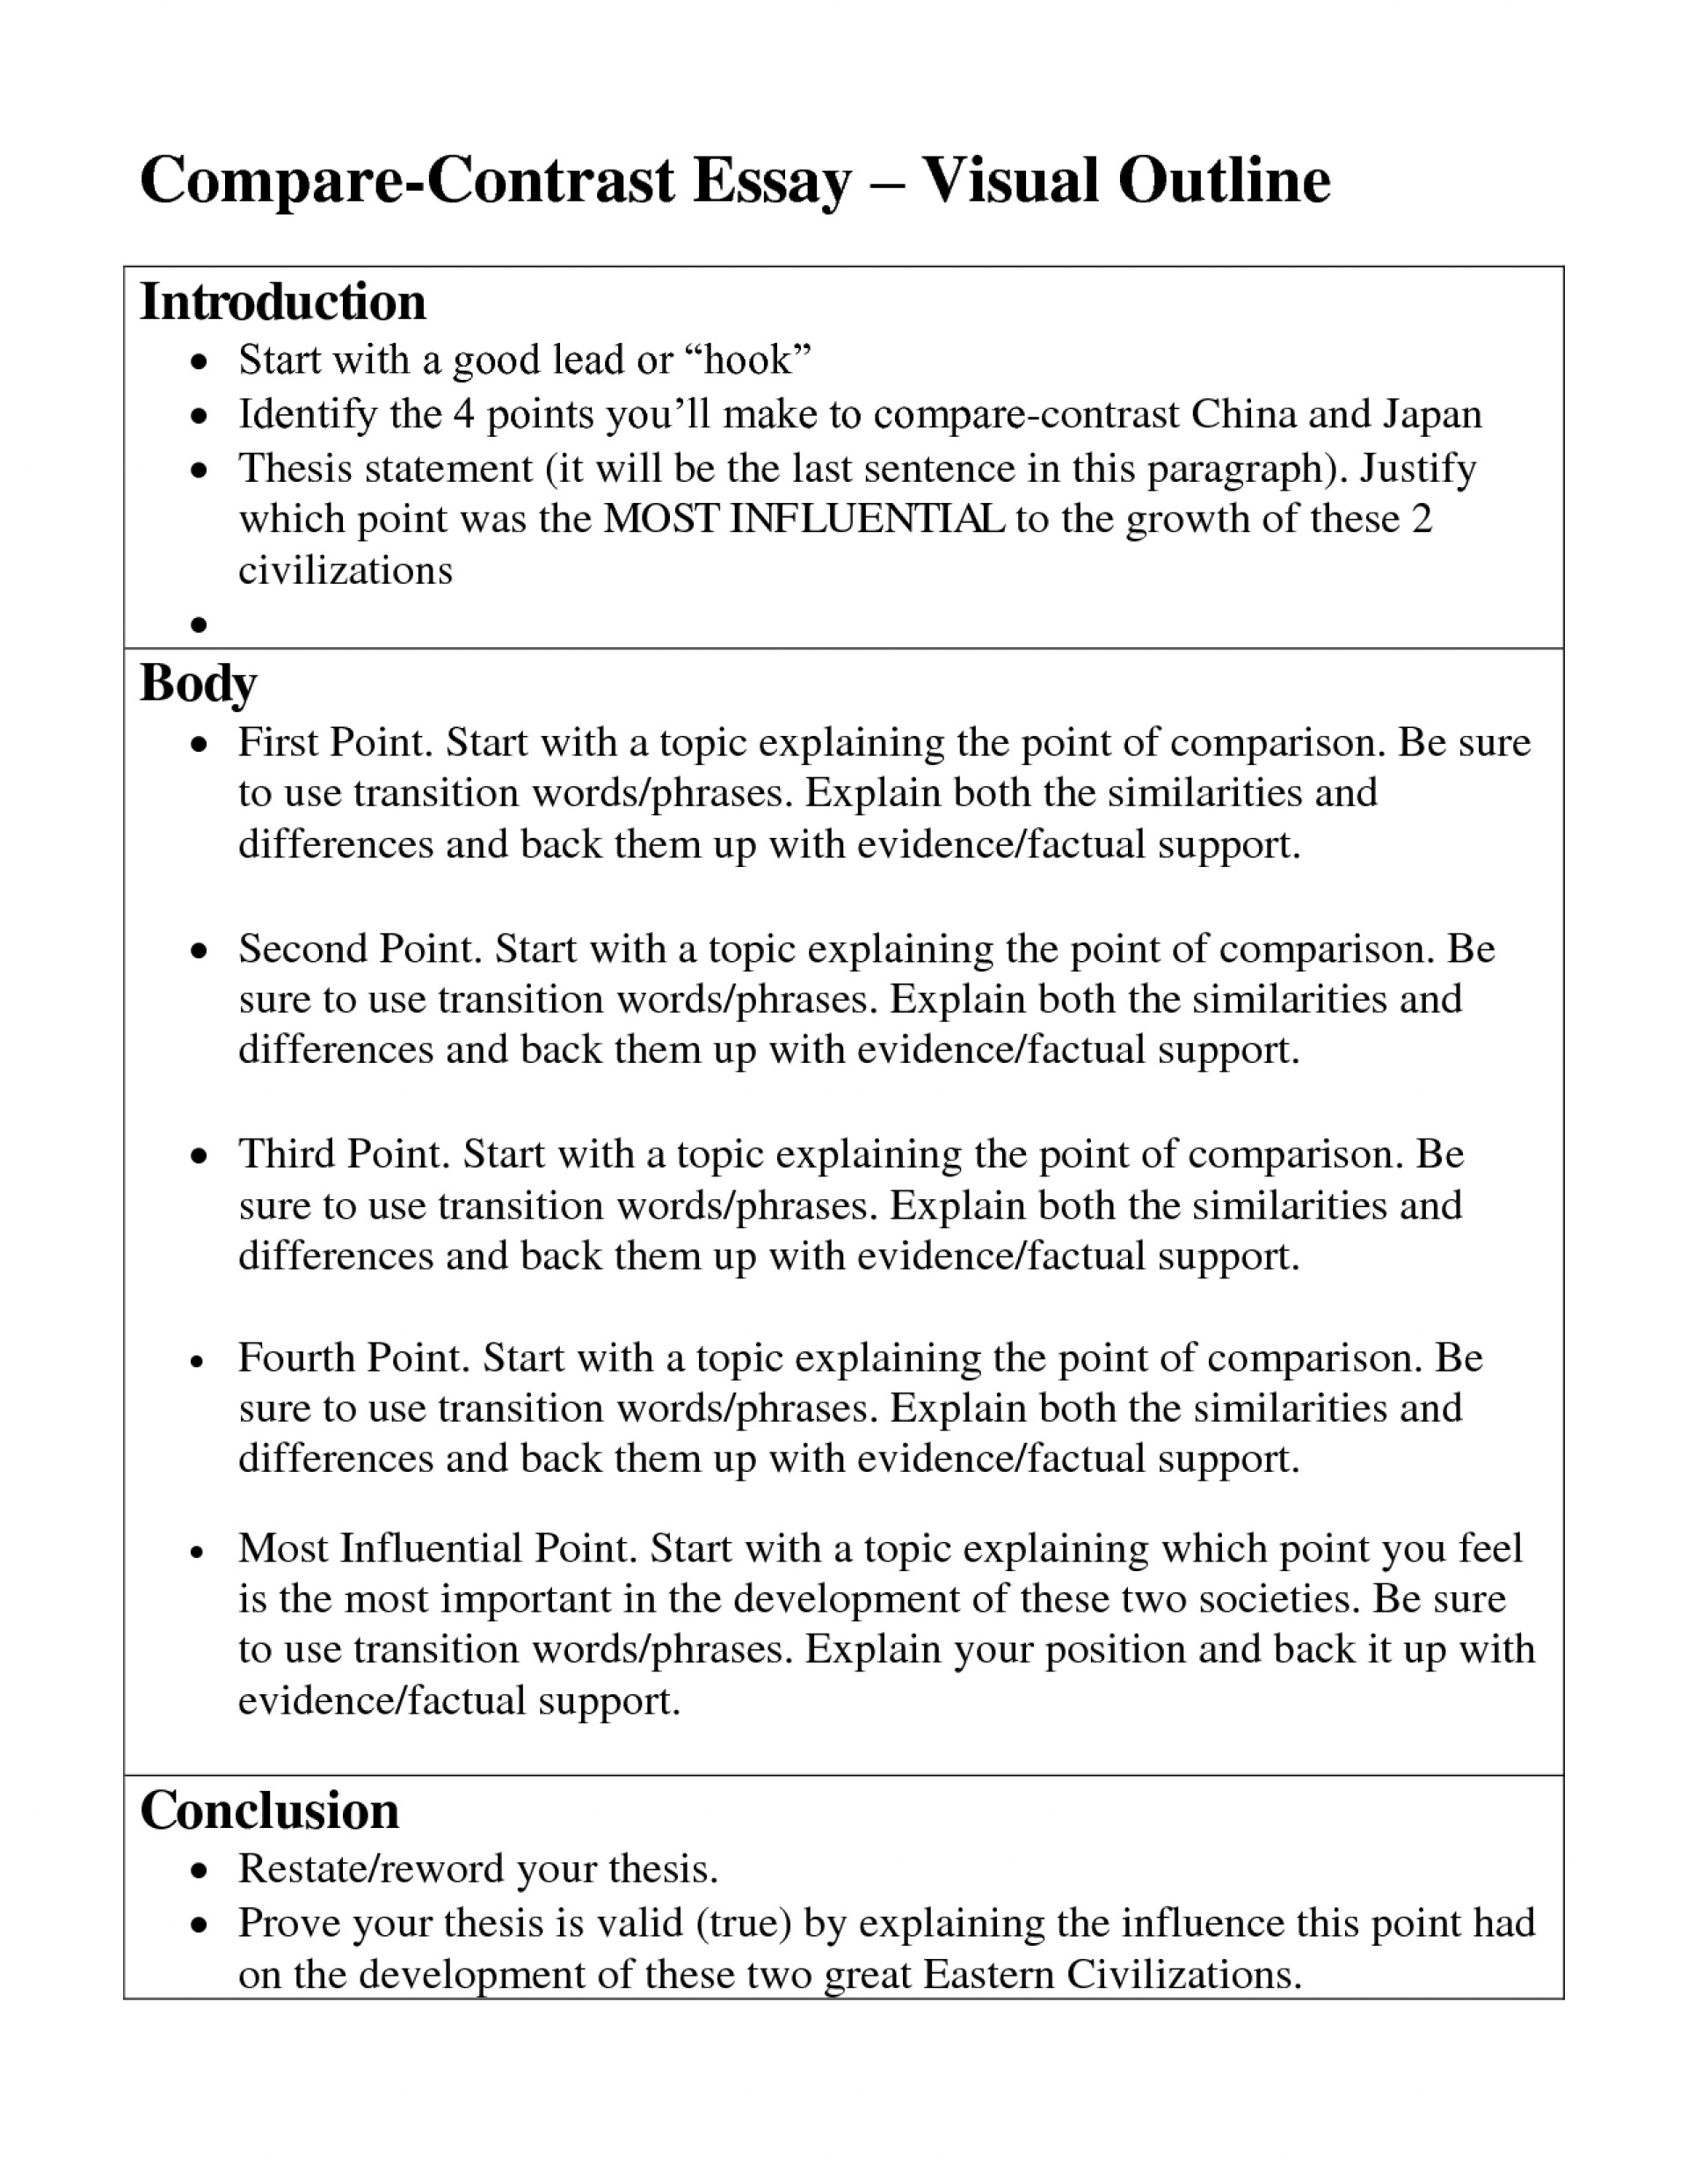 007 Essay Example Comparing And Contrasting Unique Comparison Contrast Sample Pdf Compare Structure University Topics On Health 1920